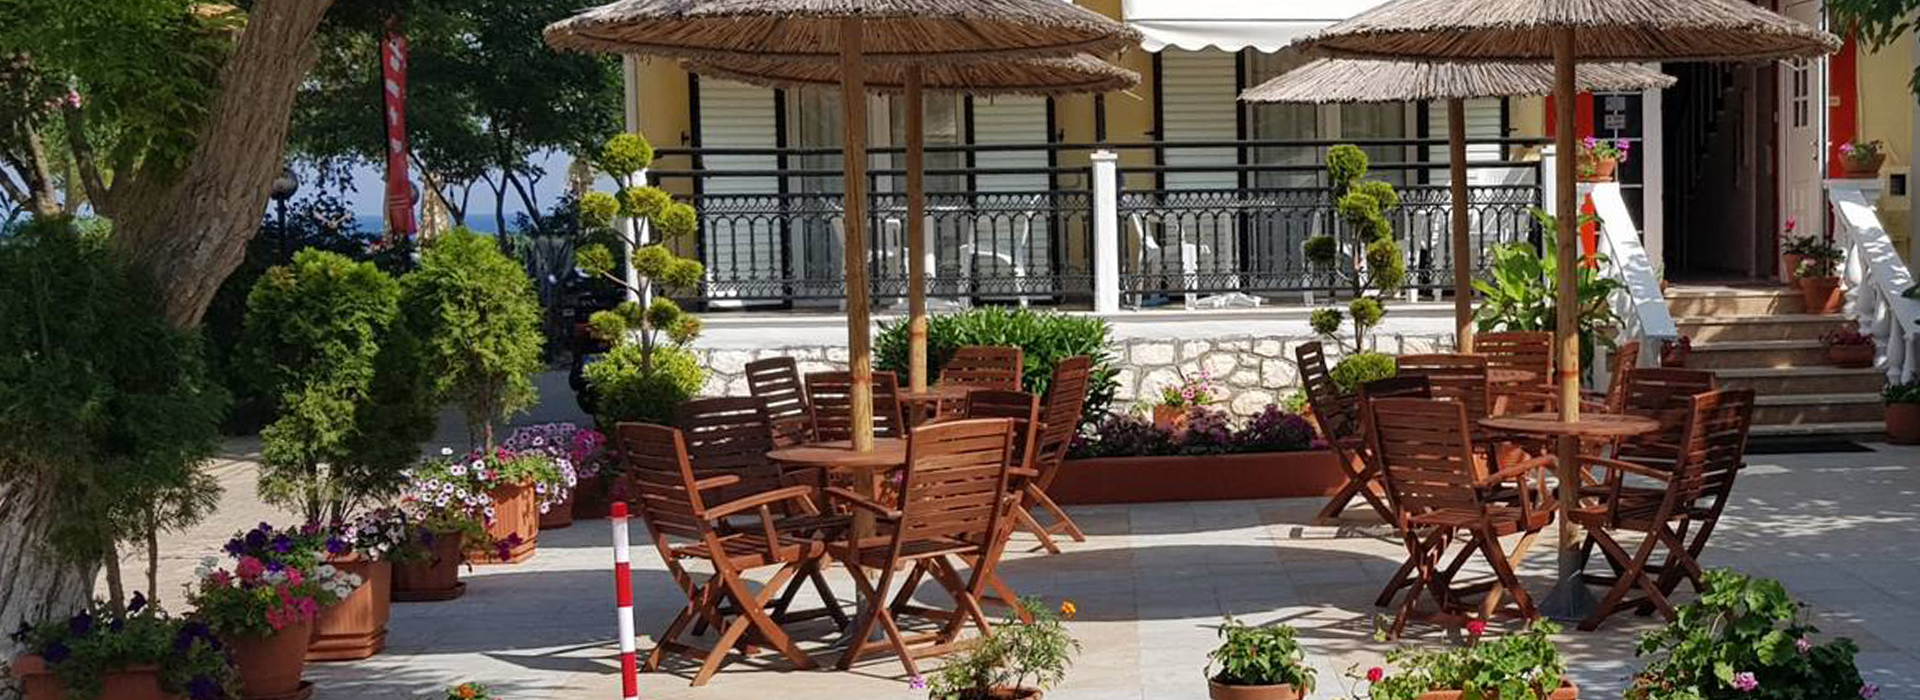 Hotel Fedra Golden Beach Thasos